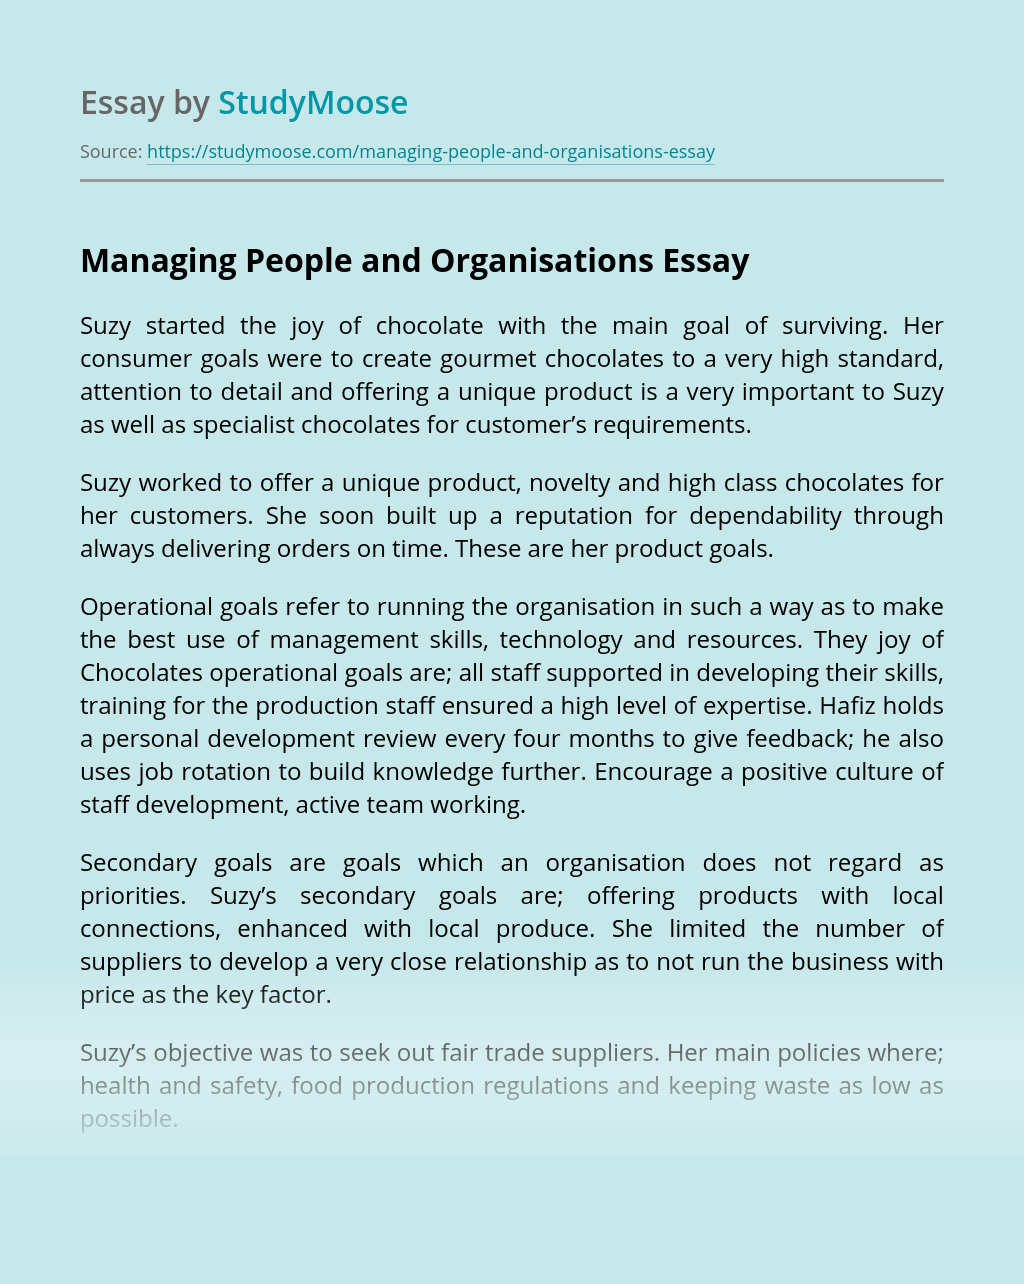 Managing People and Organisations